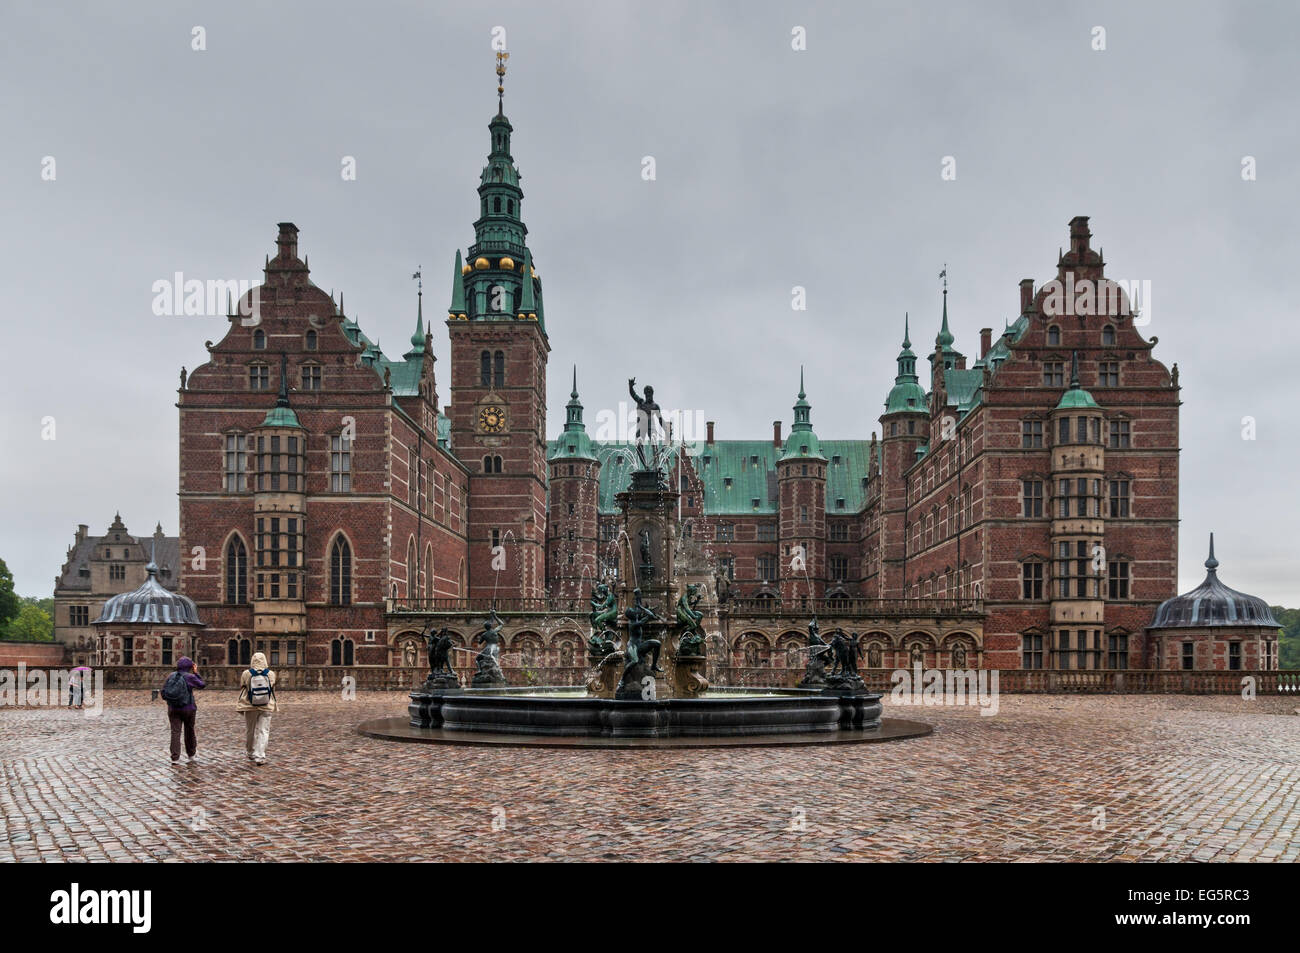 Tourists visiting the Frederiksborg palace and the baroque gardens in rainy weather. - Stock Image